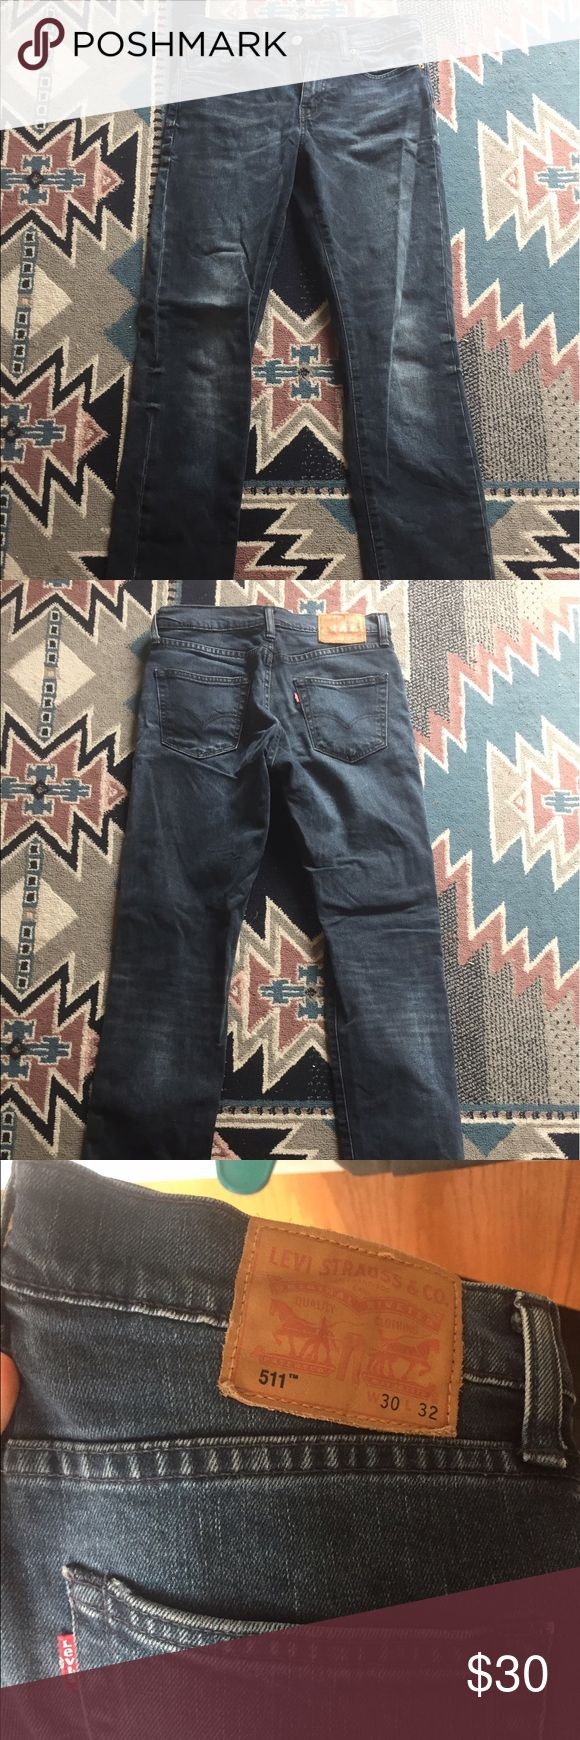 511 Levi's Jeans These were only used 5 times and are in excellent condition, size 30x32 Levi's Jeans Slim Straight